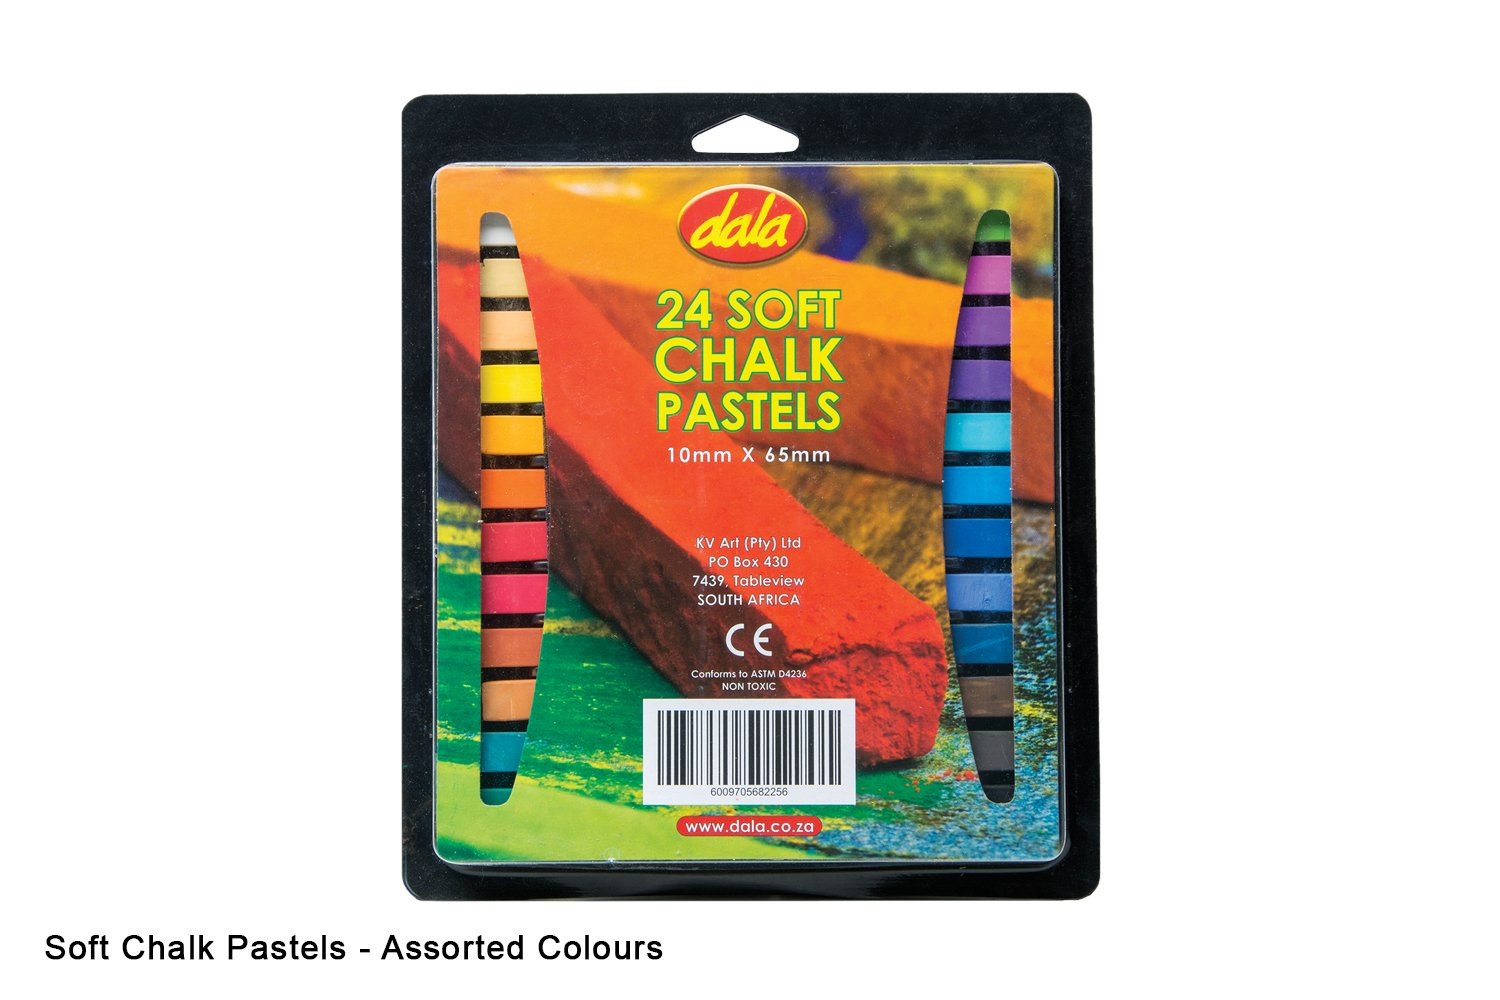 Soft Chalk Pastels